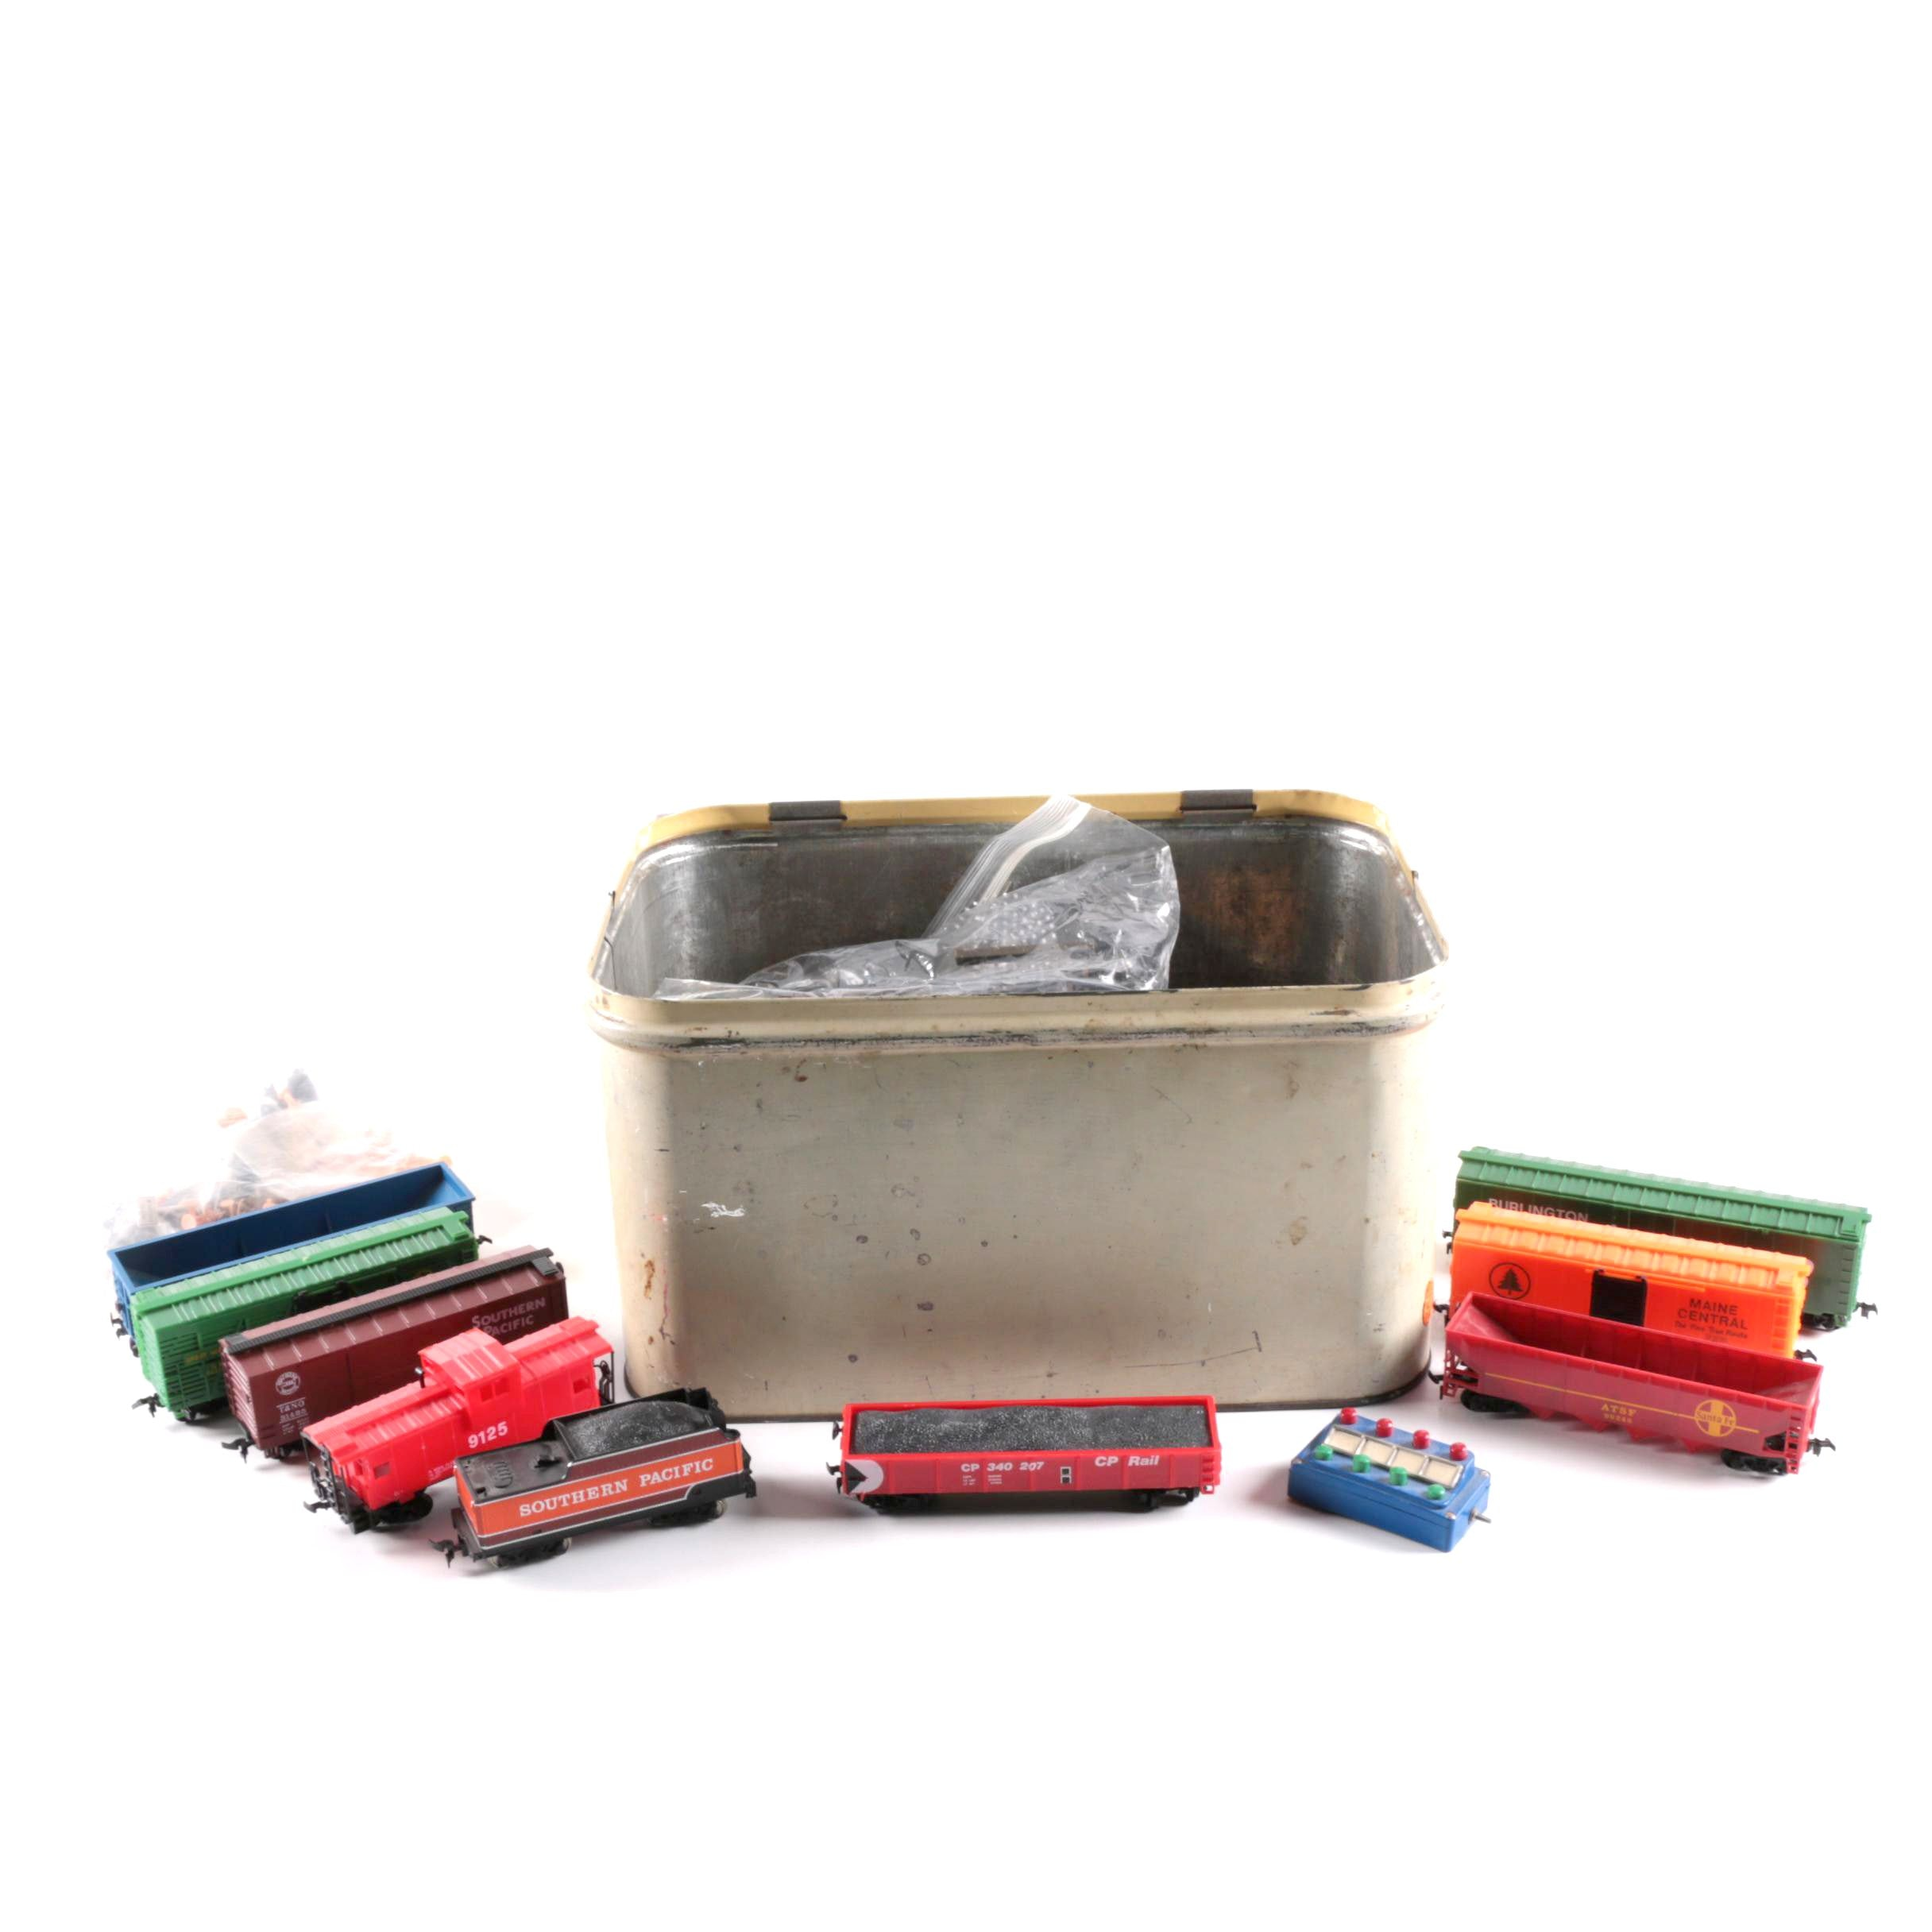 Vintage Plastic Trains with Empeco Tin Container, Track, and More